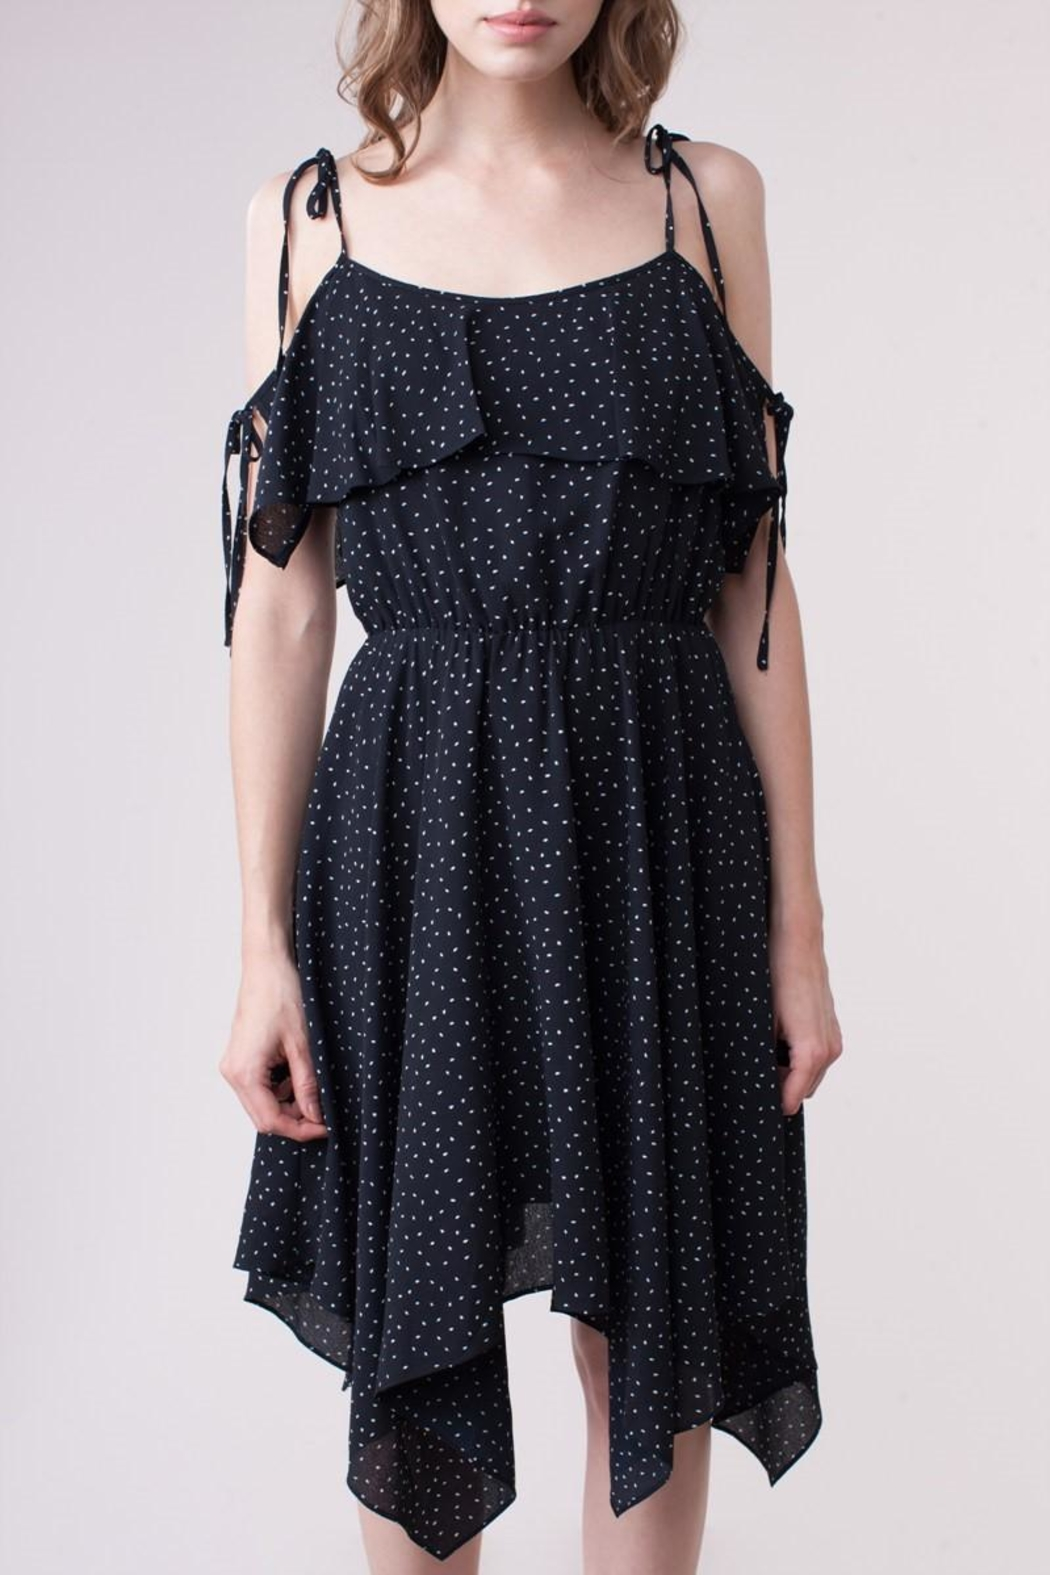 People Outfitter Blanche Ruffle Dress - Back Cropped Image